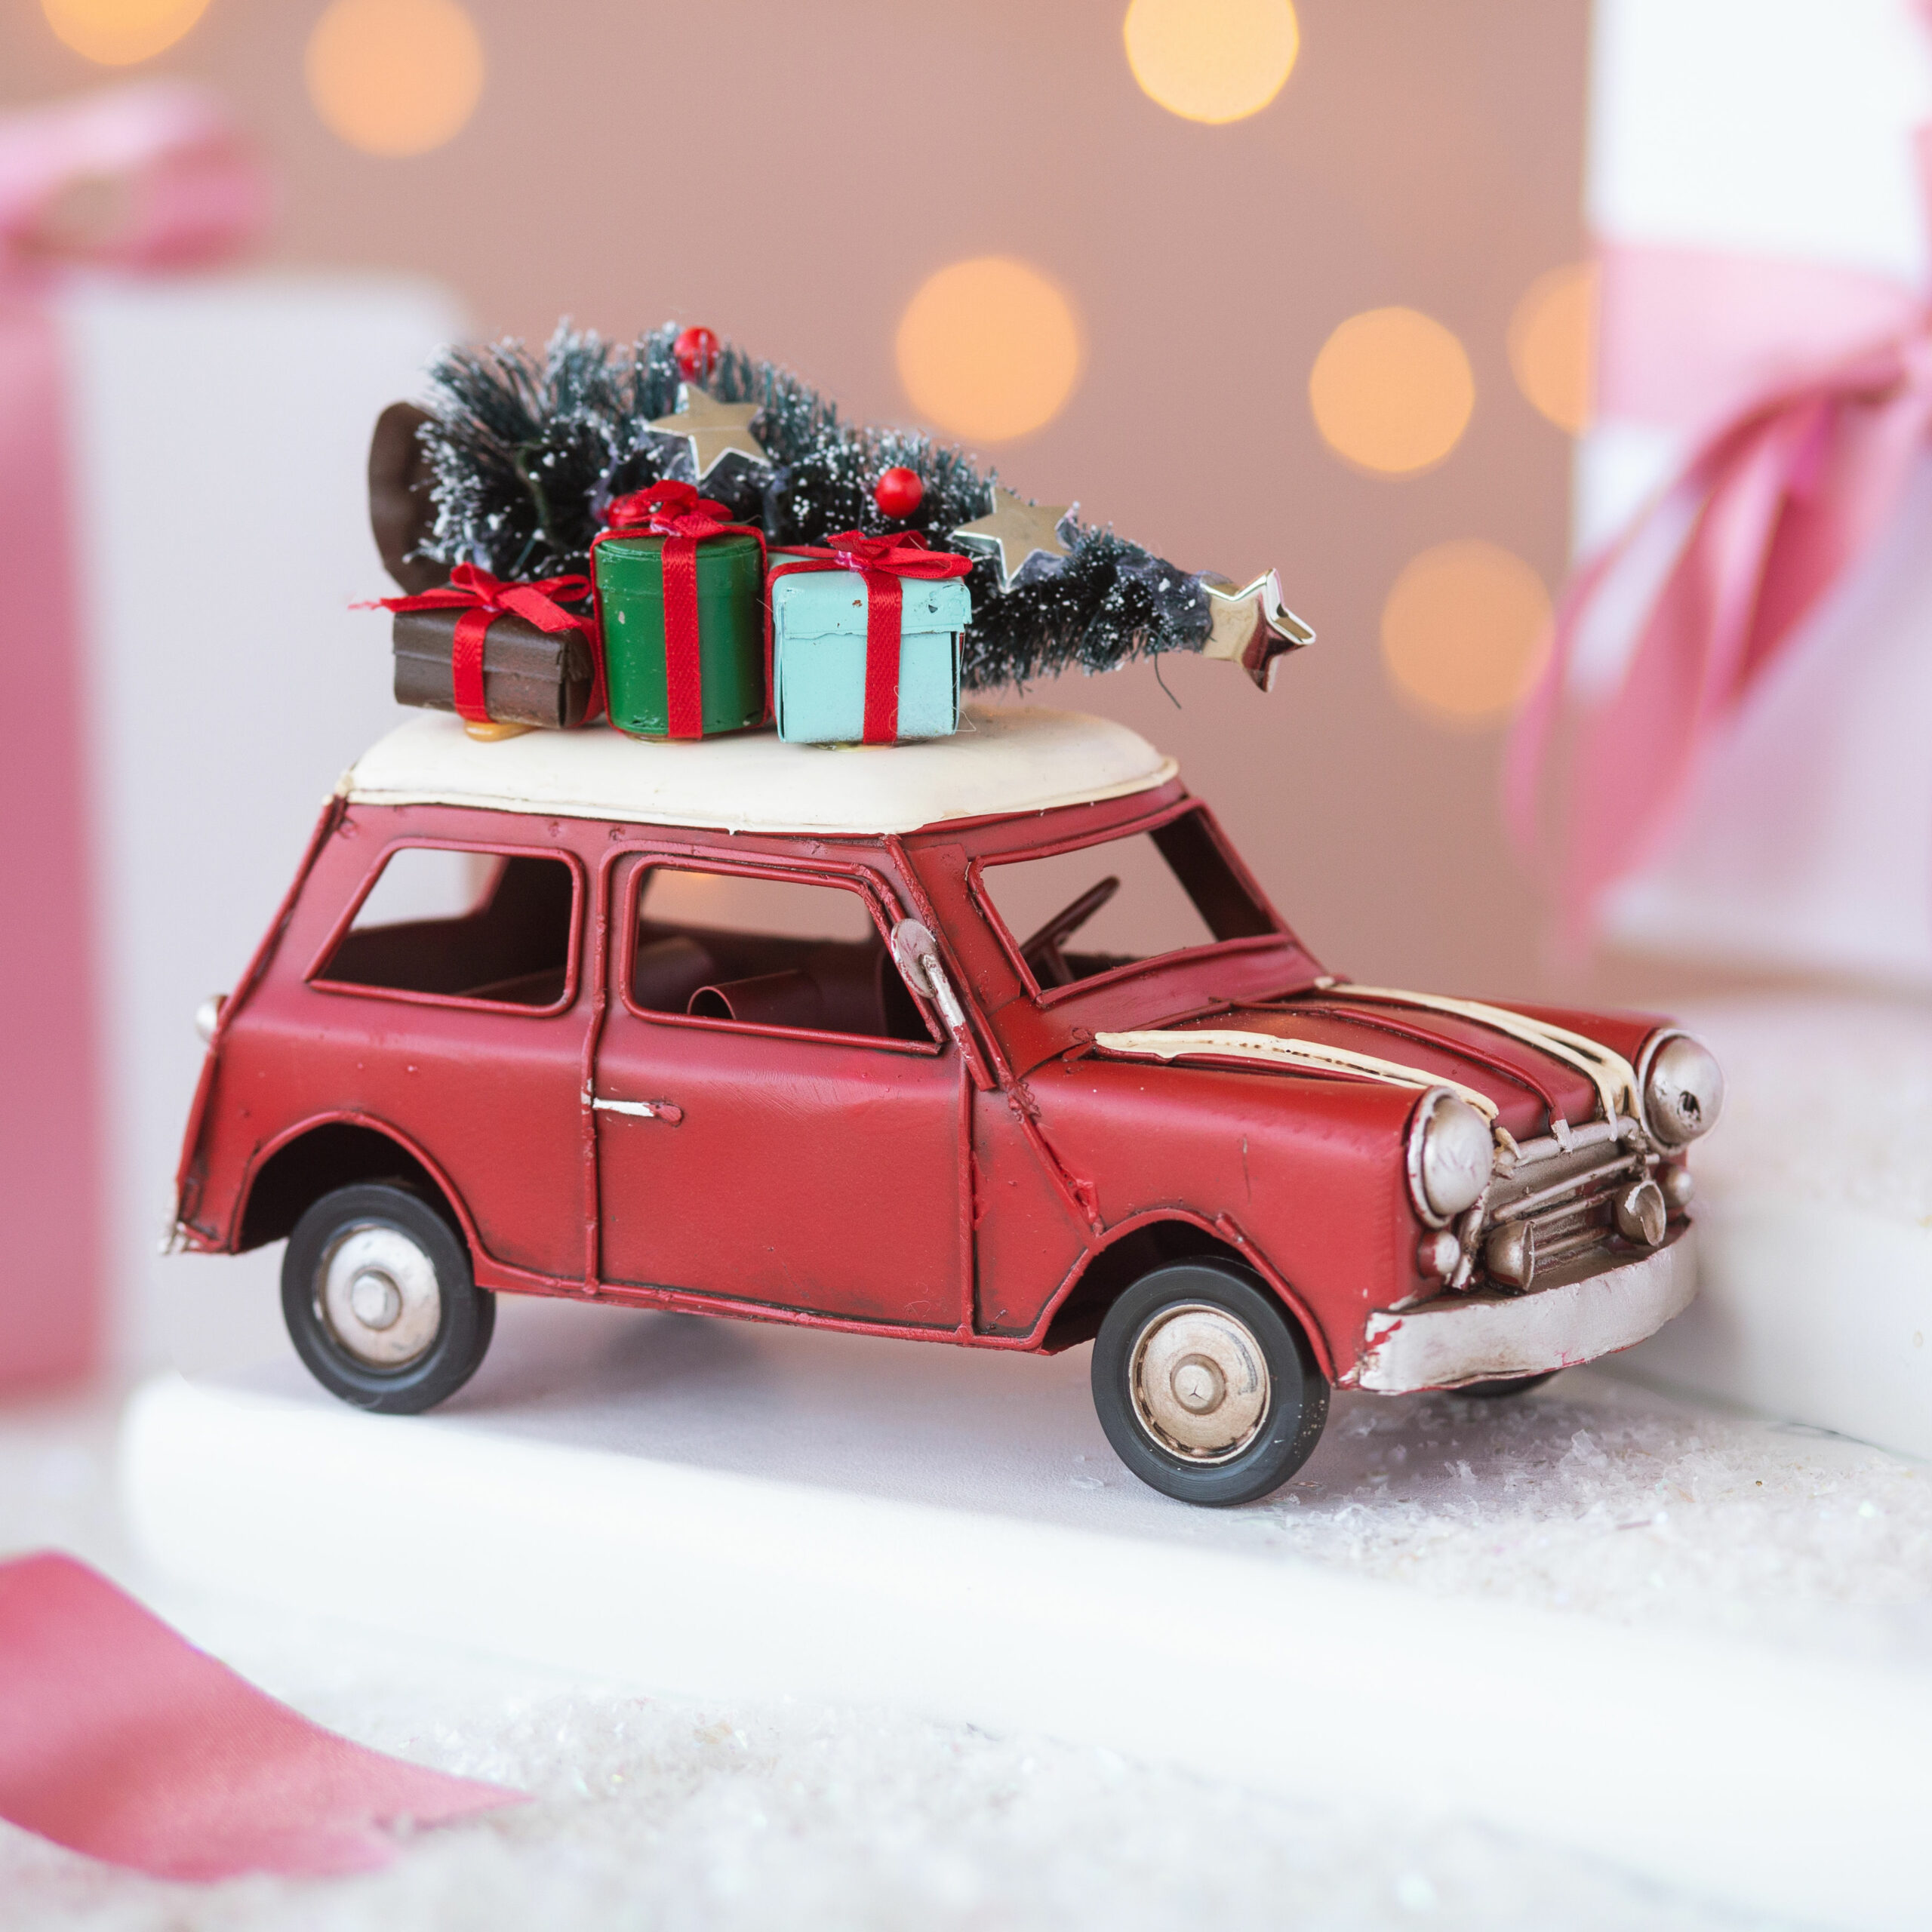 Driving Home for Christmas Mini Car Decoration